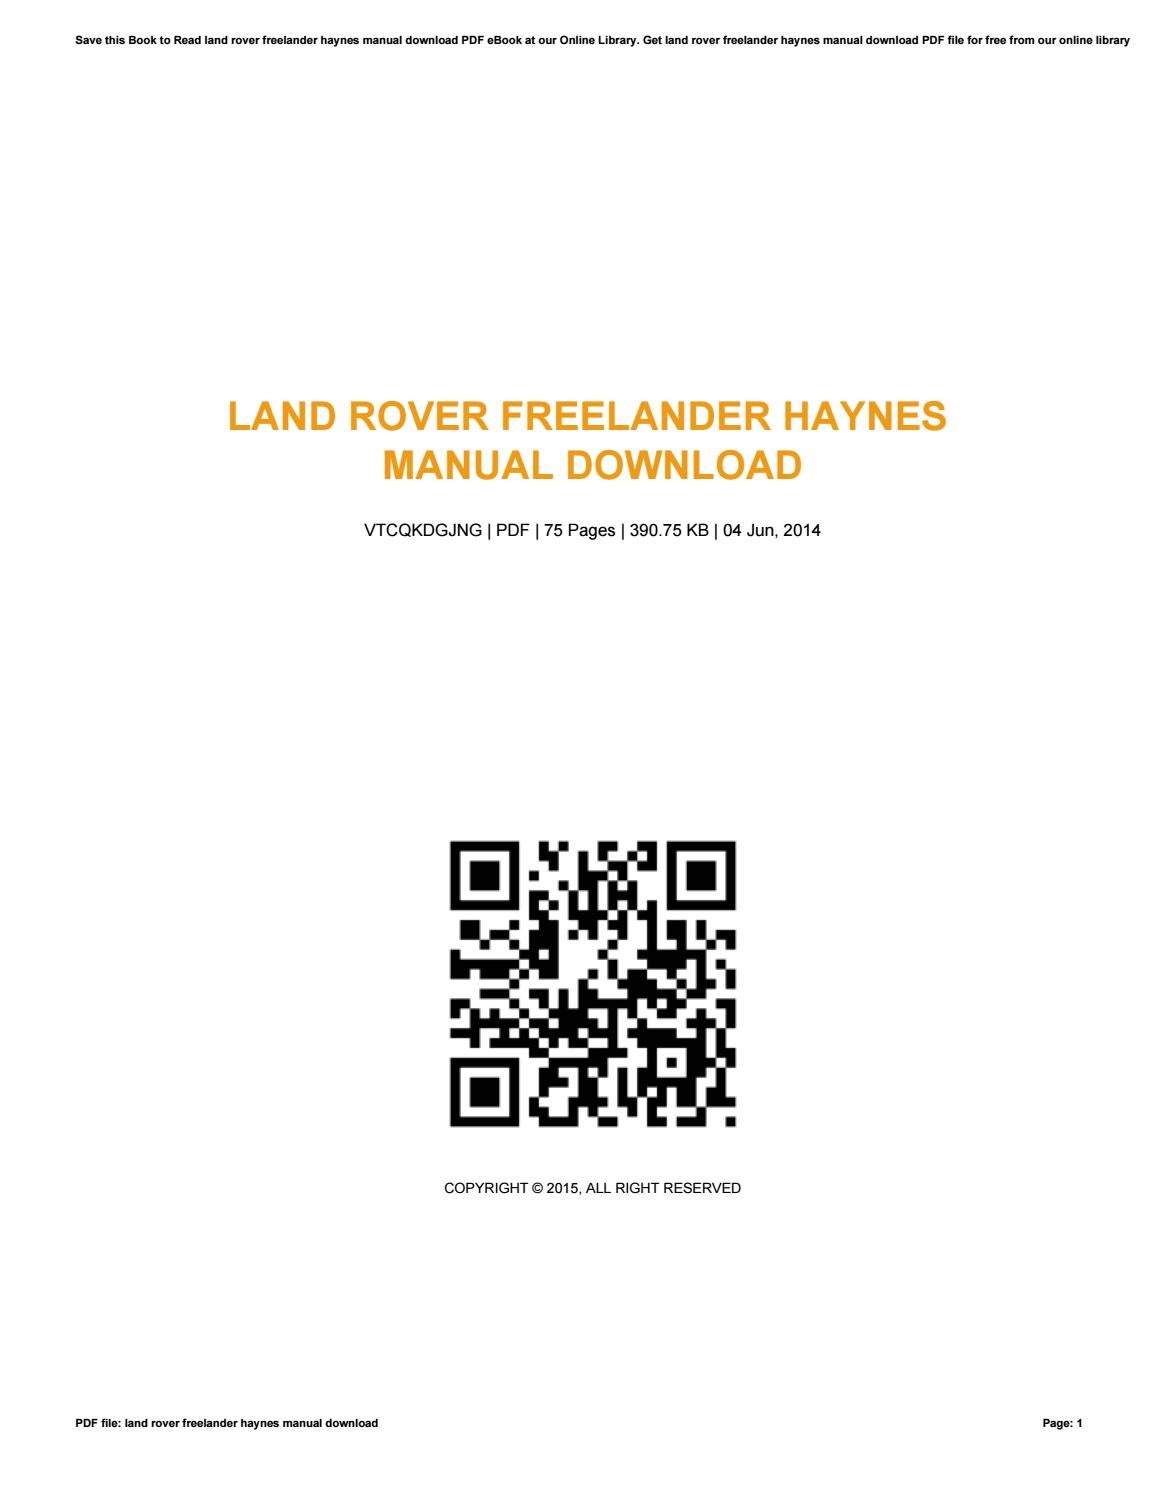 Land rover freelander haynes manual download by